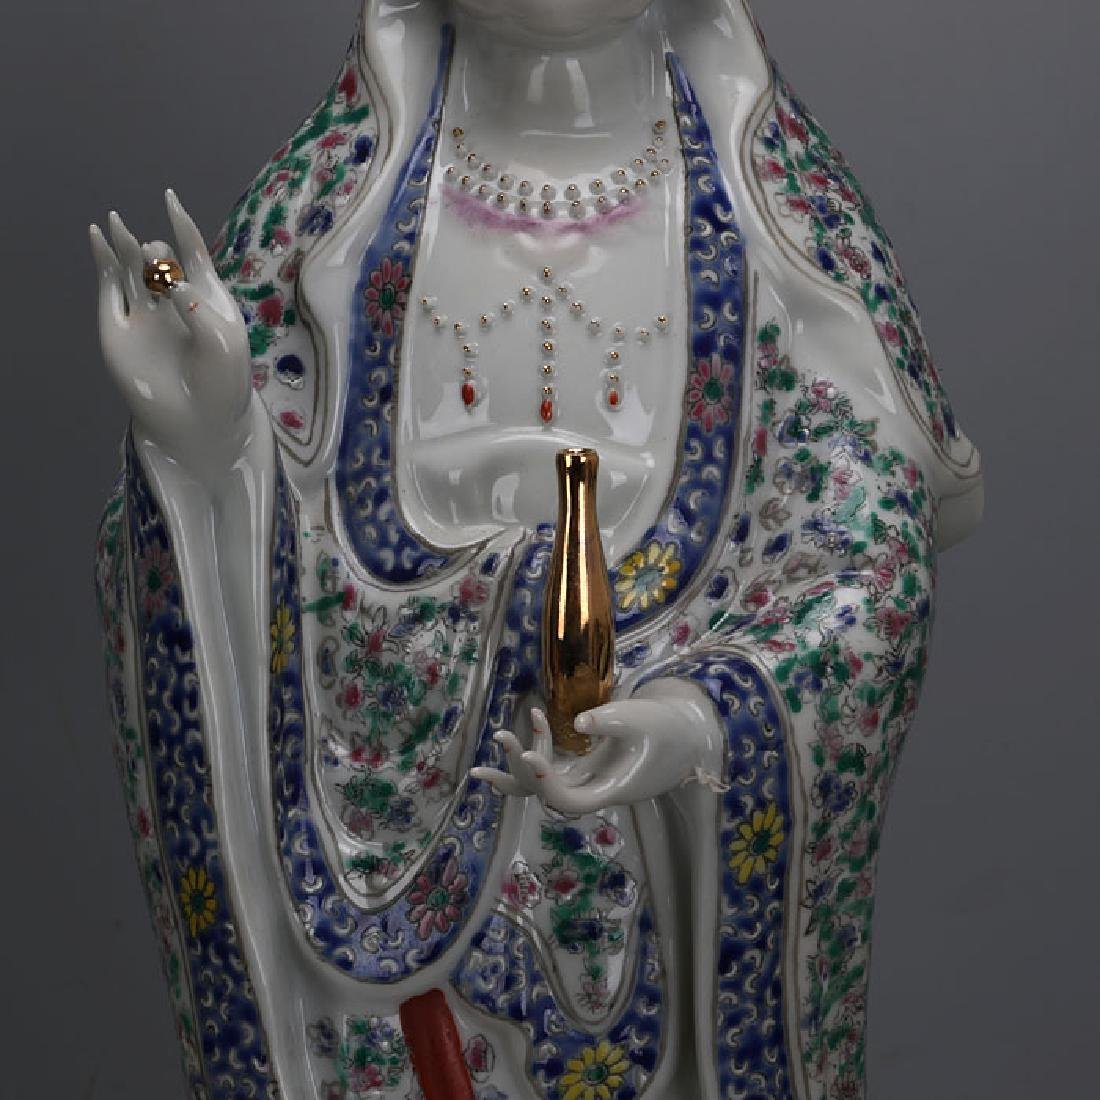 Chinese Antique Famille-Rose Porcelain Guanyin Statue - 3